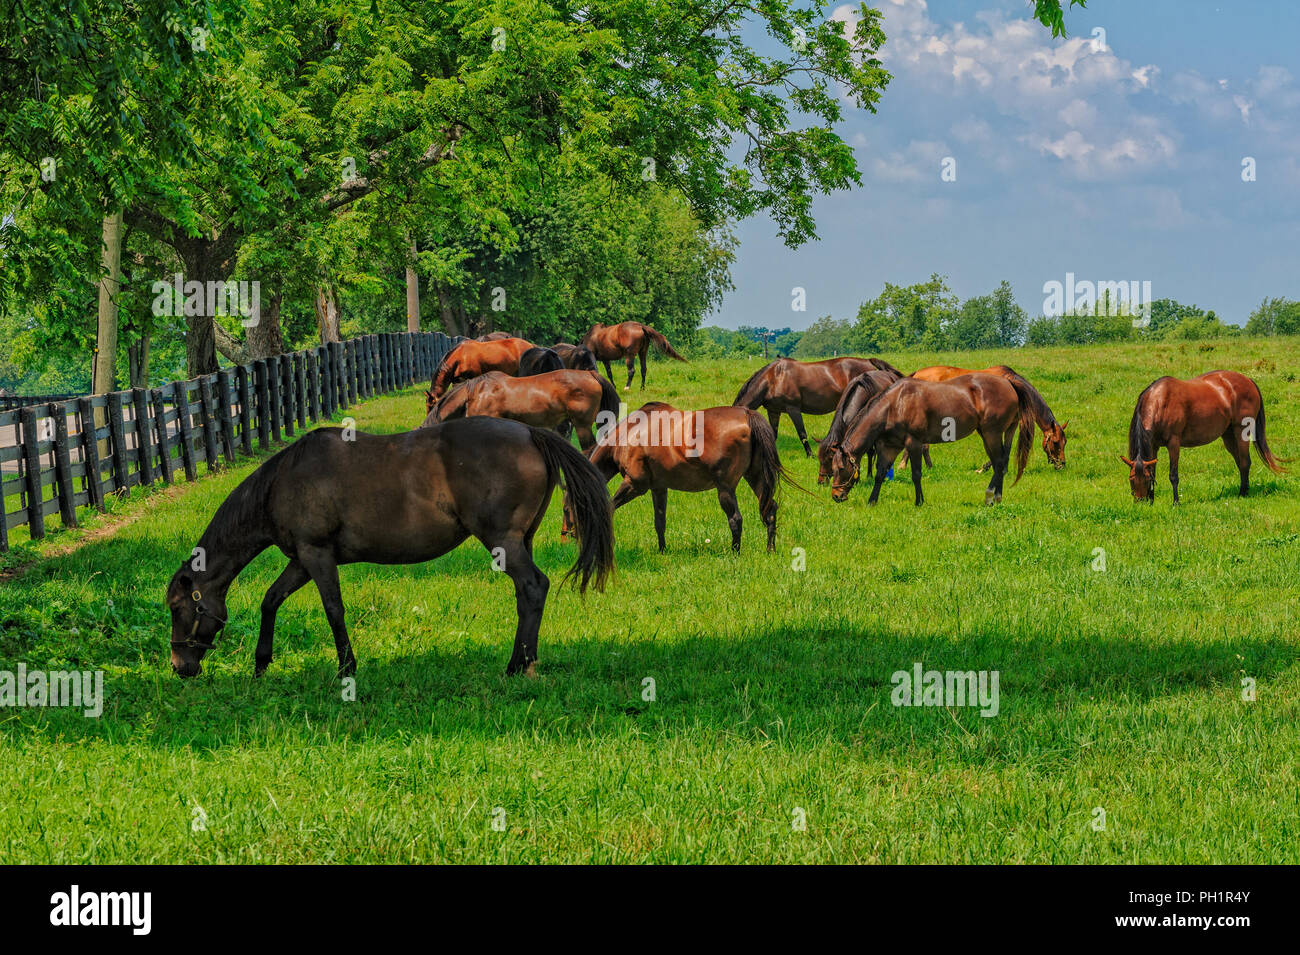 Thoroughbred Horses in Kentucky - Stock Image